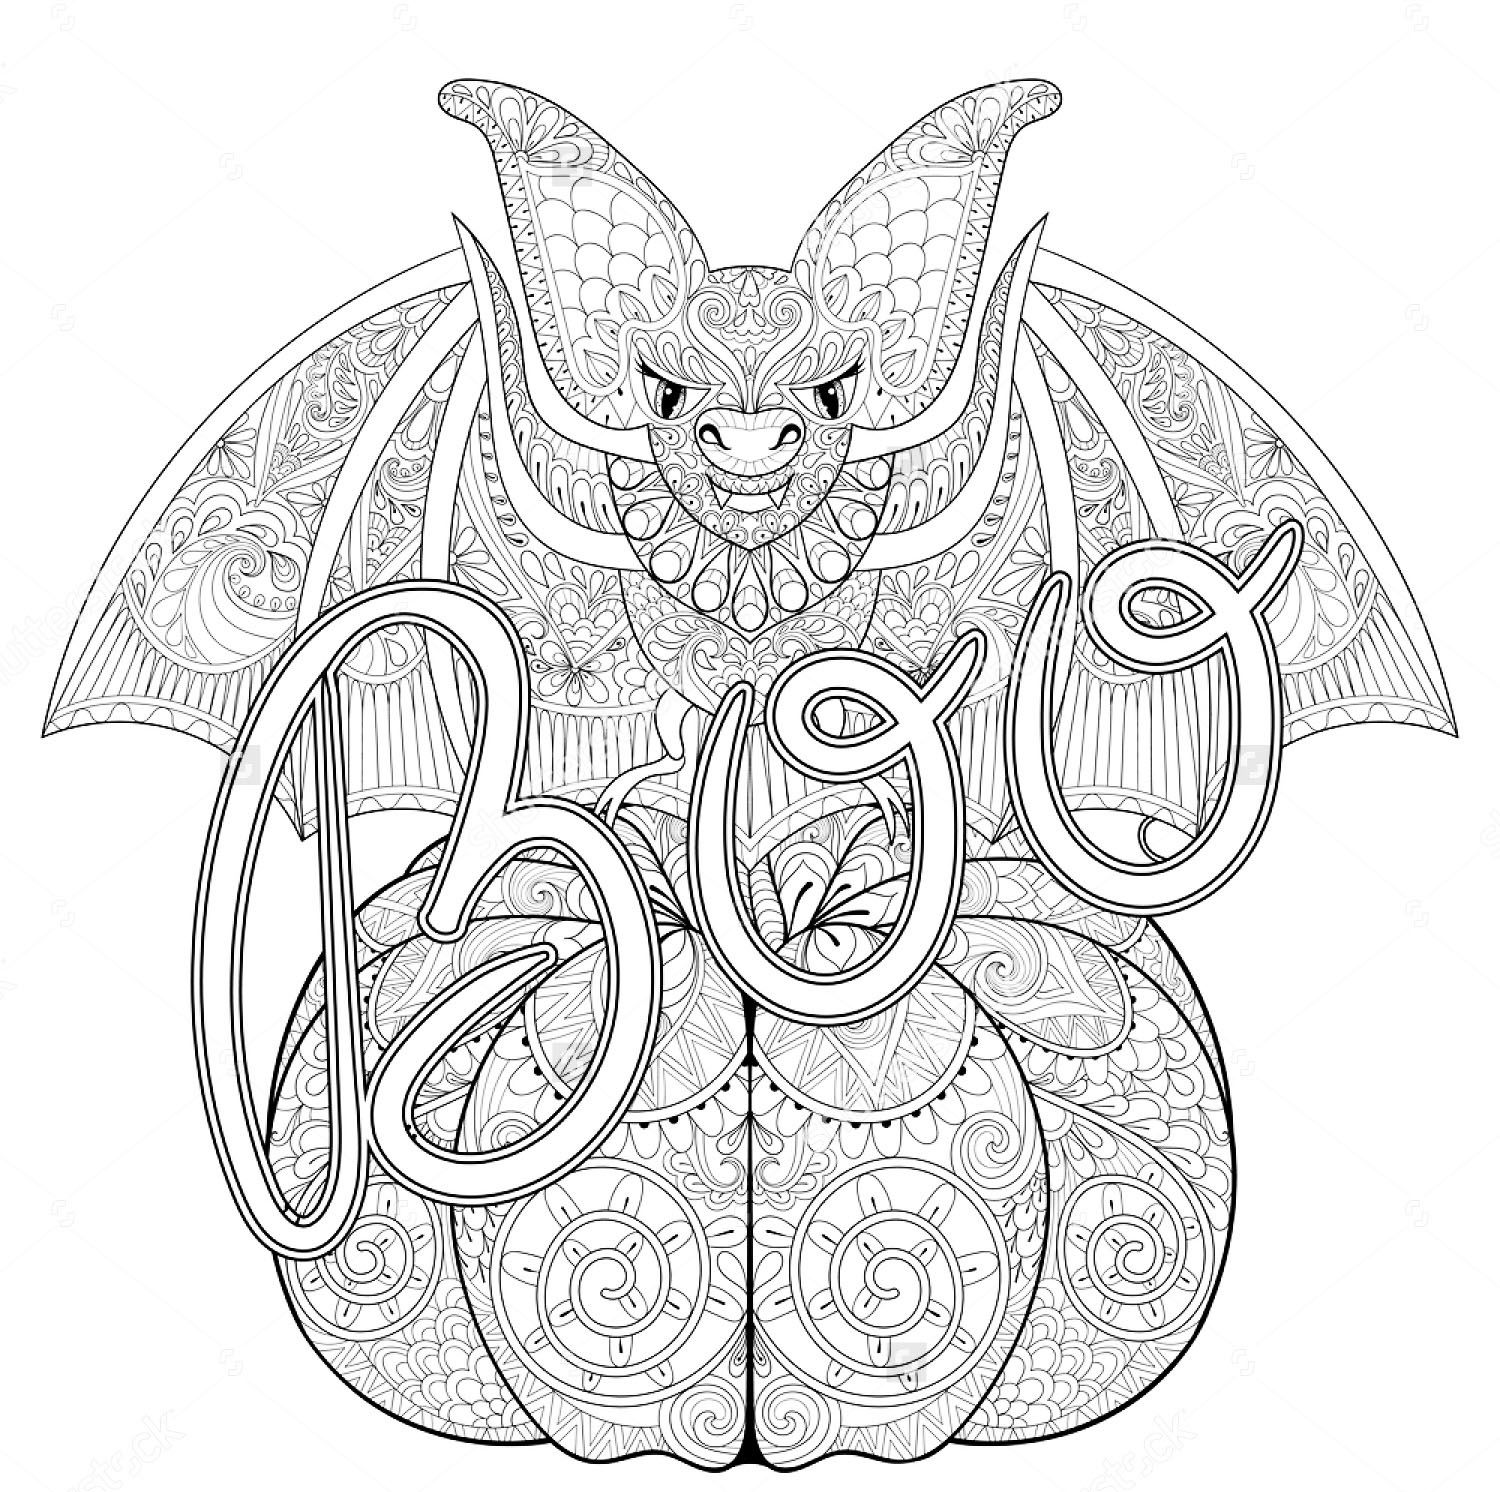 free halloween coloring sheets for adults art therapy coloring page halloween pumpkin halloween 5 halloween sheets adults free for coloring